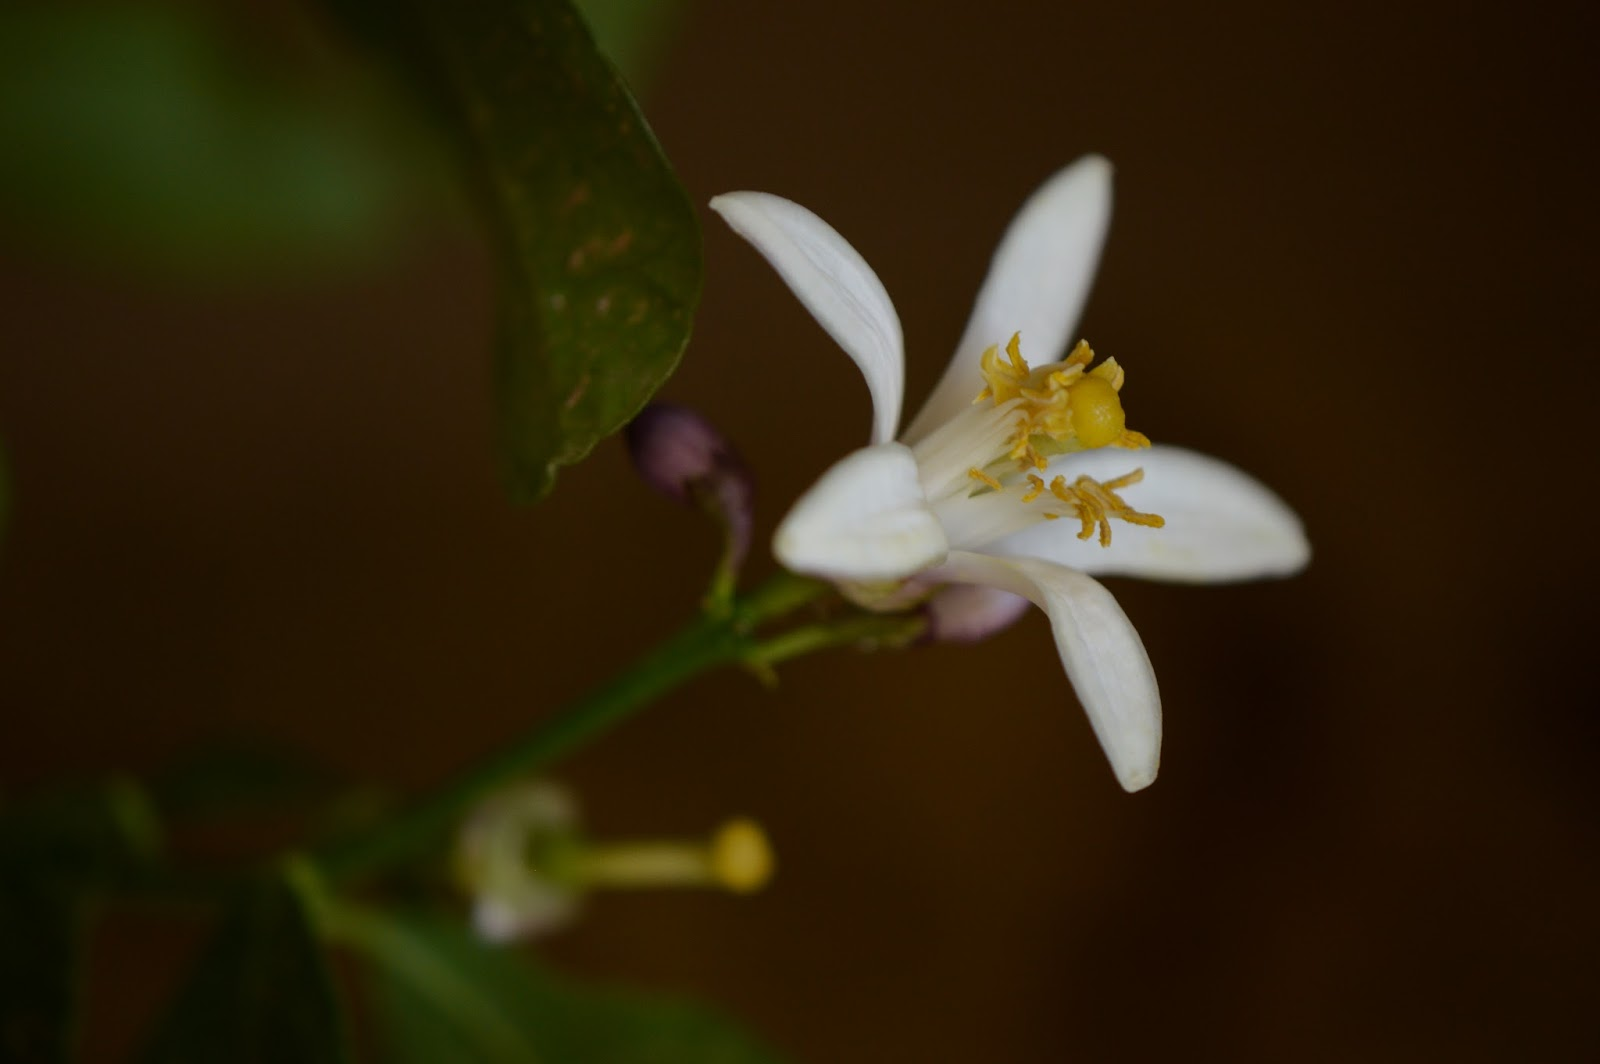 lemon blossom, amy myers photography